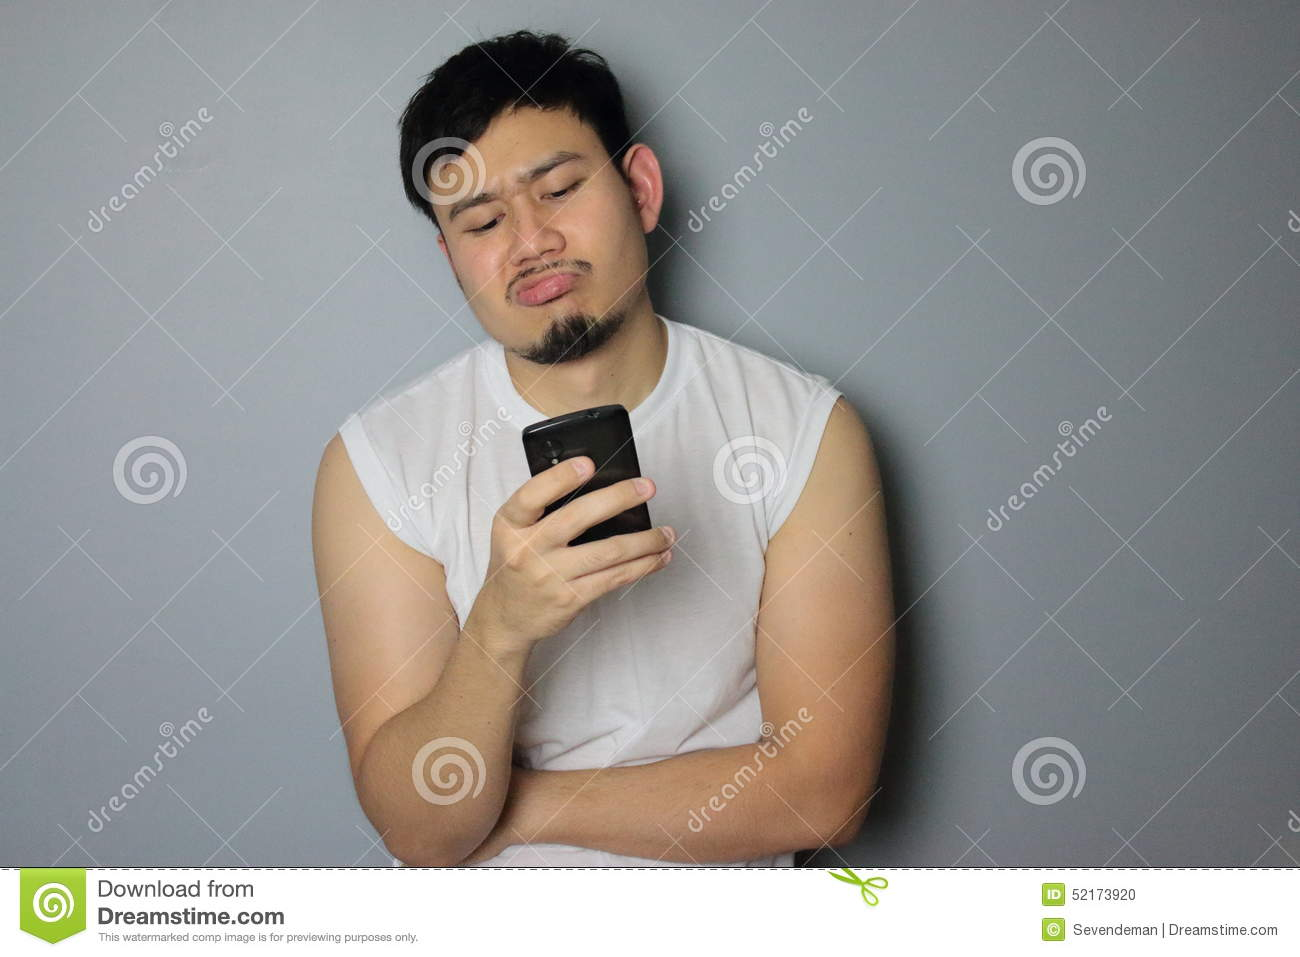 A man and smartphone.